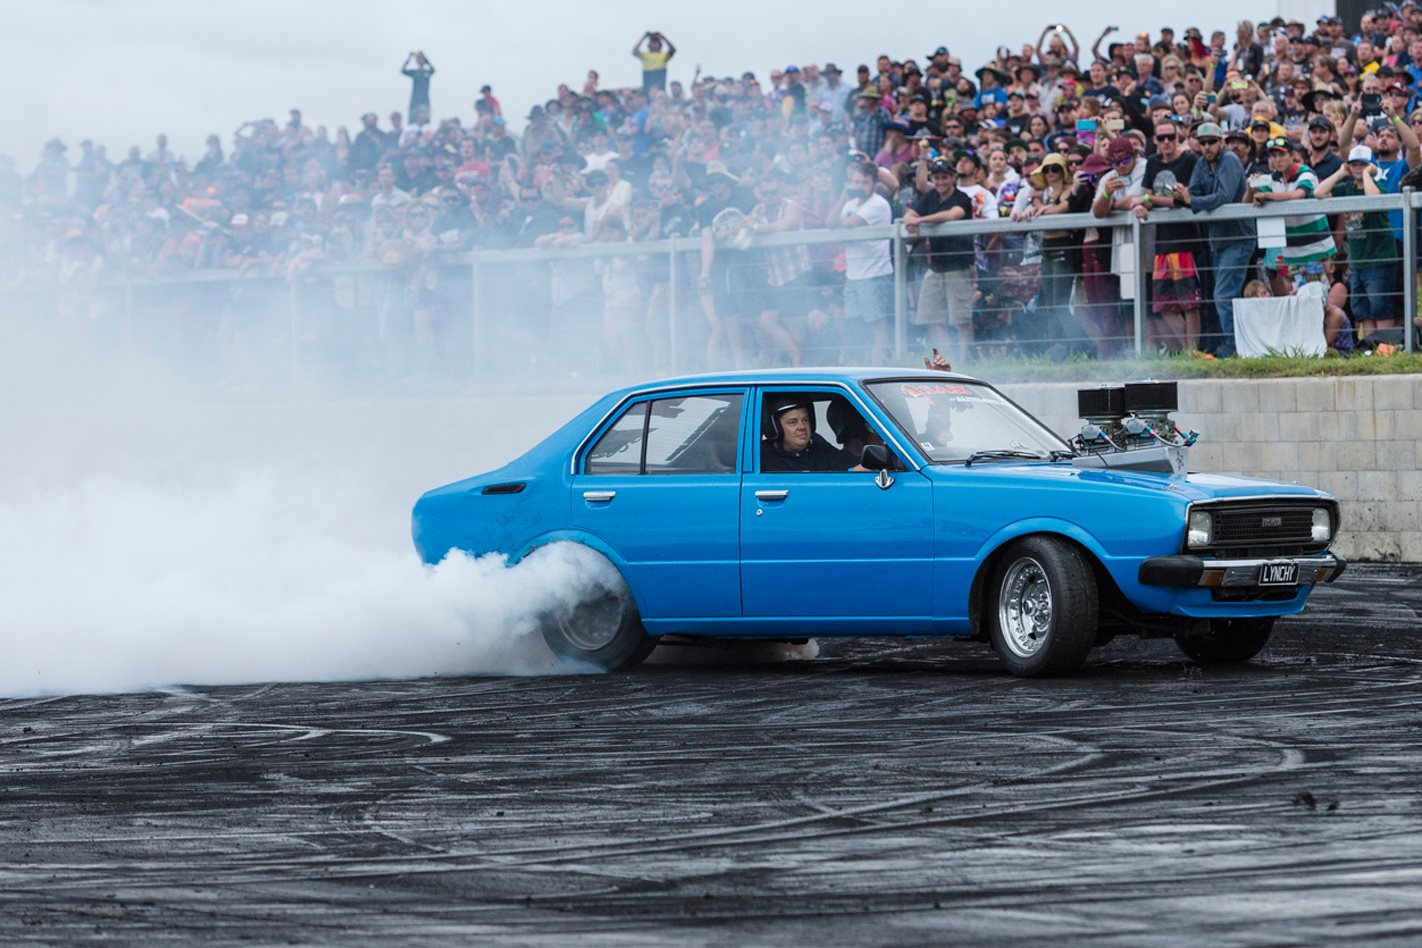 Andrew Lynch And Steven Loader Swap Burnout Cars Video